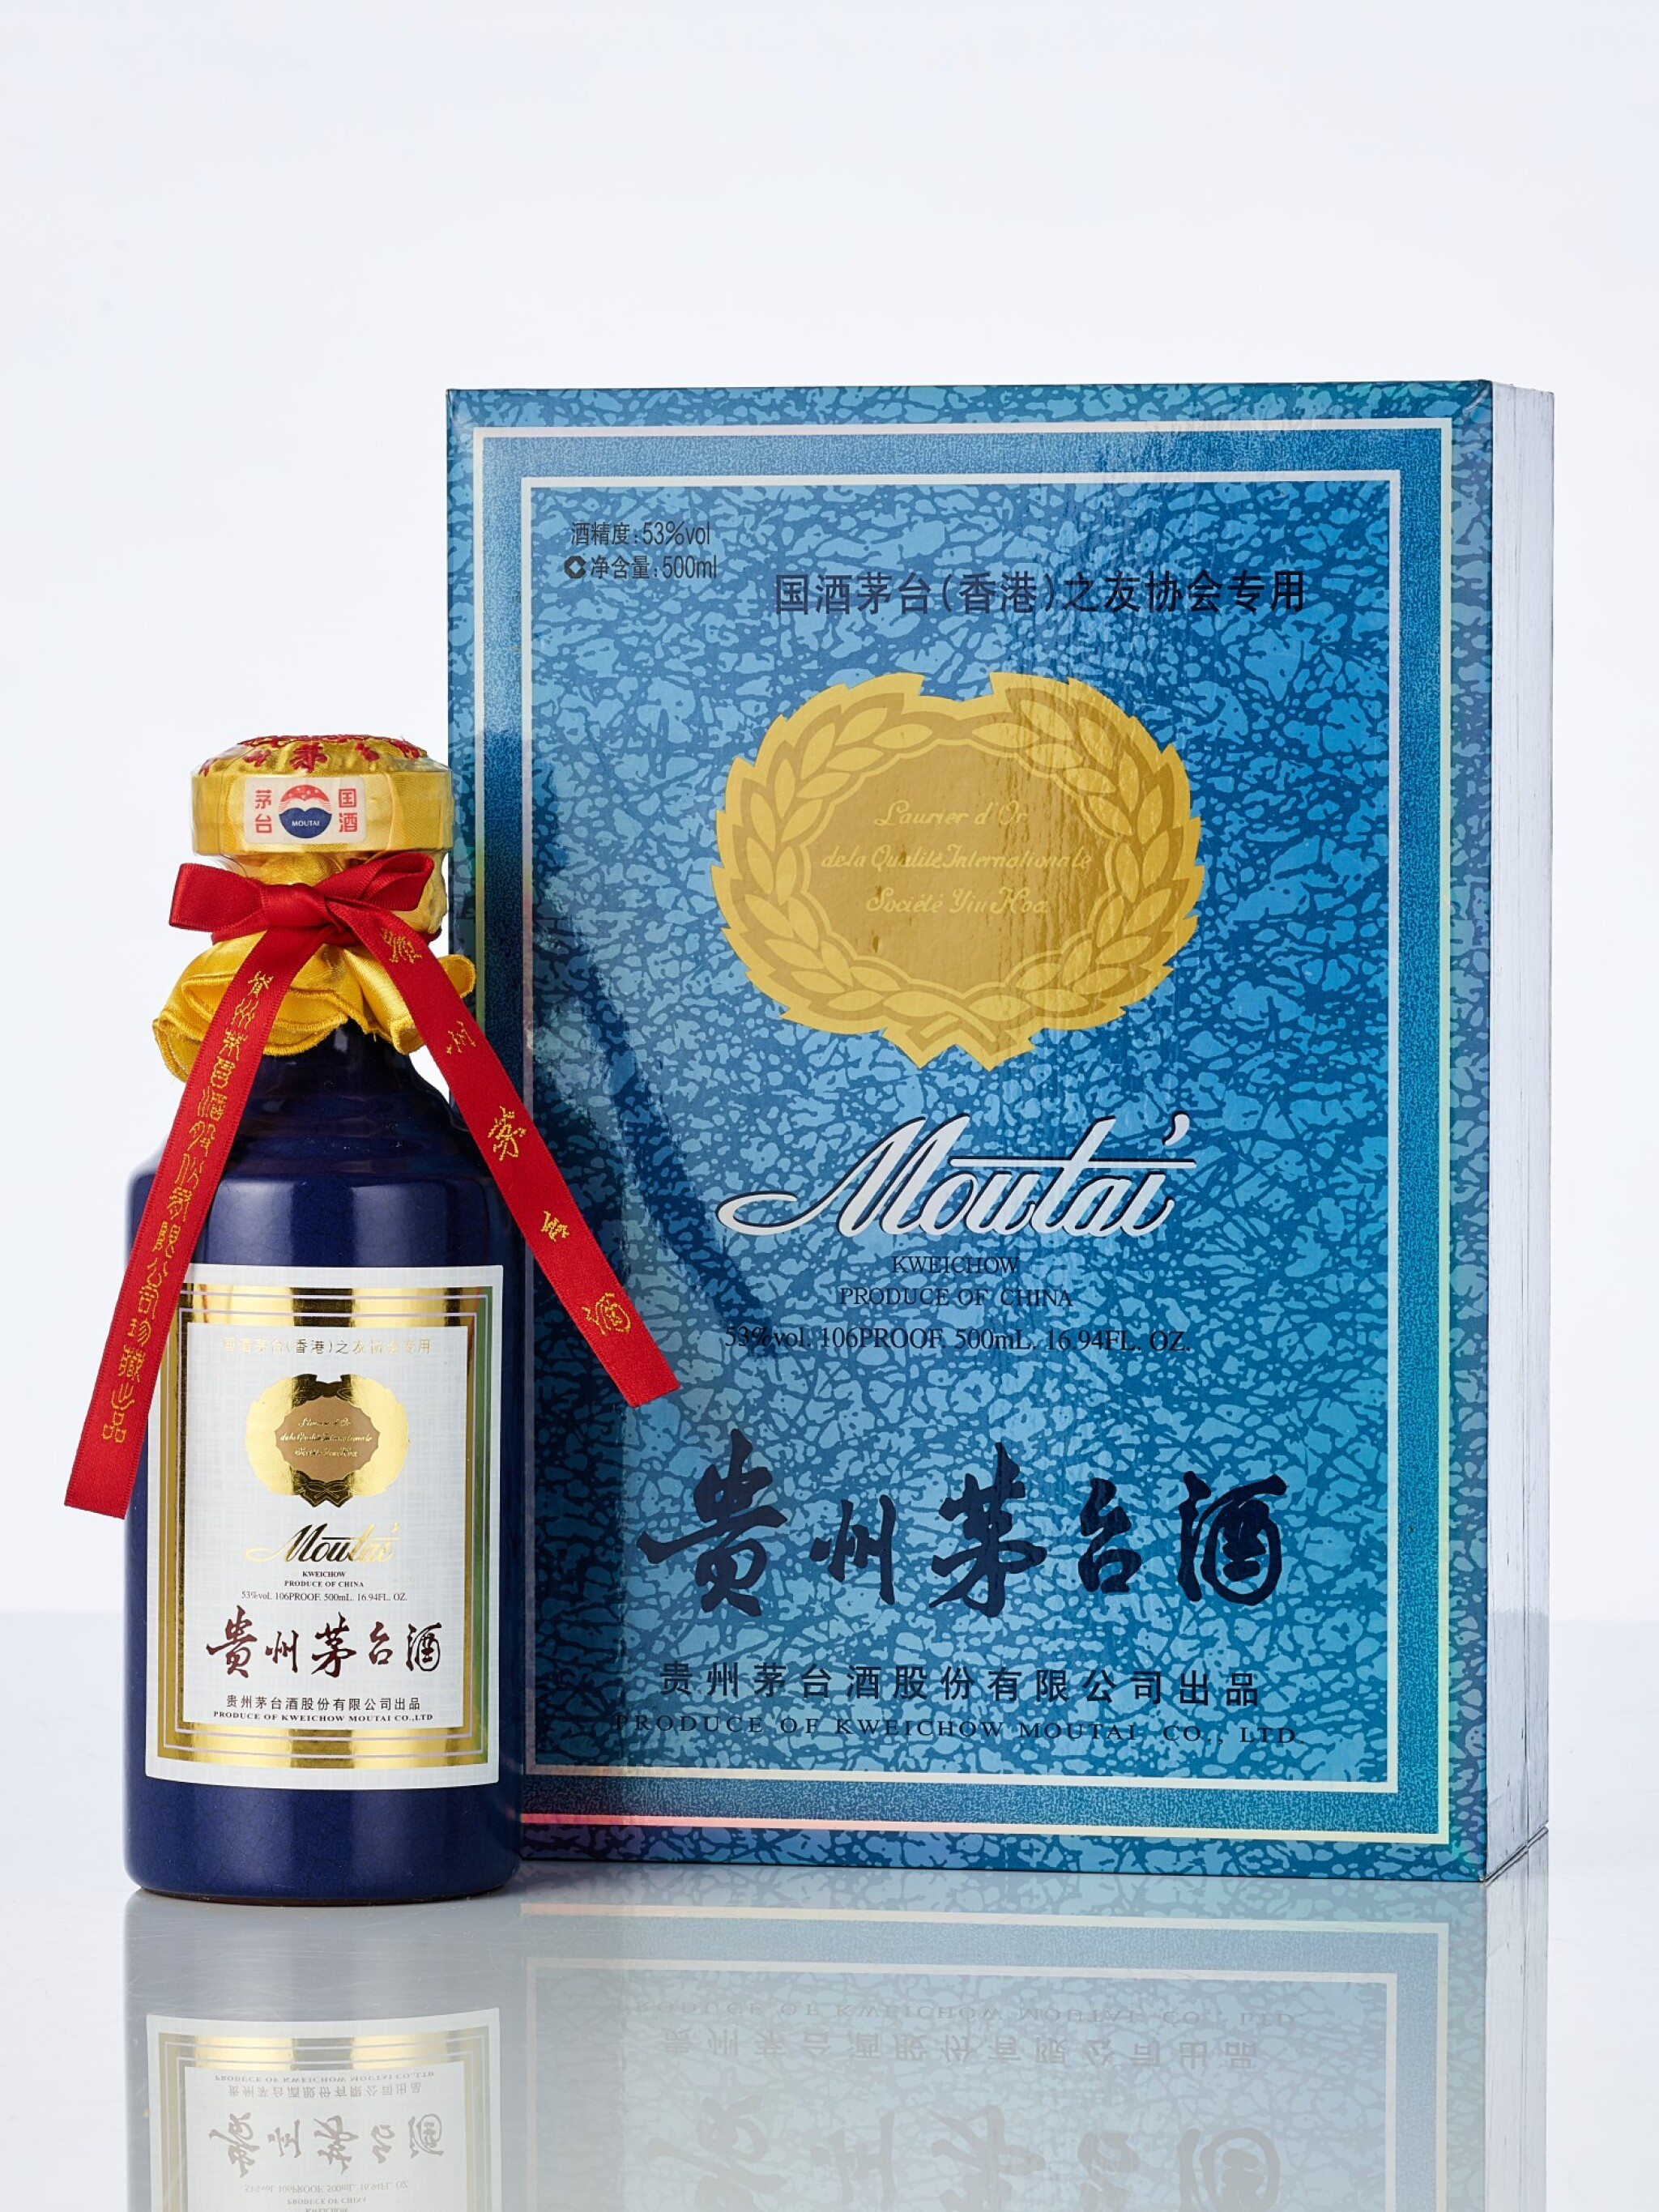 View full screen - View 1 of Lot 2075. 2008年產國酒茅台香港之友協會專用茅台酒50年(藍茅)Kweichow Moutai HK Friends Of Moutai Special Edition Aged 50 Years 2008.